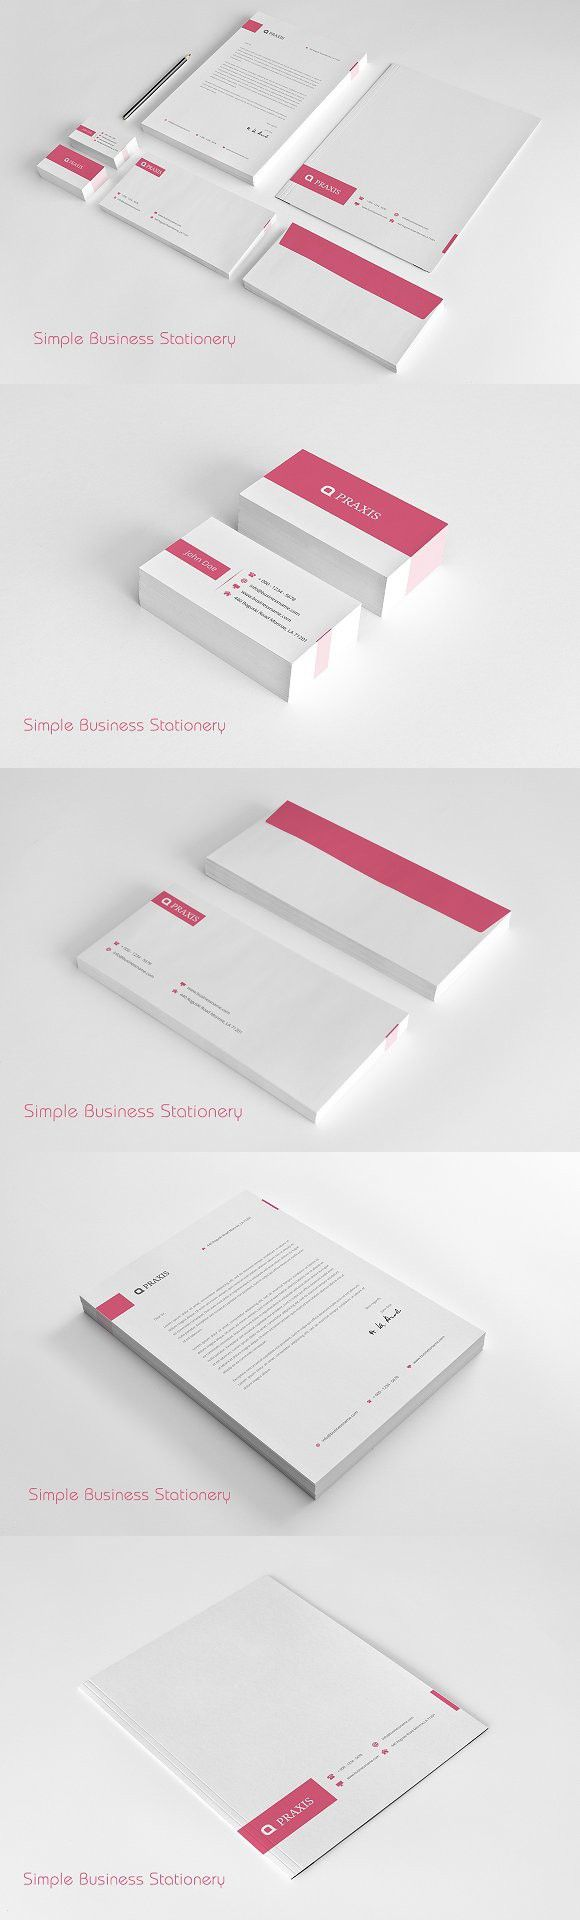 27 best clean stationery designs images on pinterest stationery simple business stationery creative business card templates accmission Images